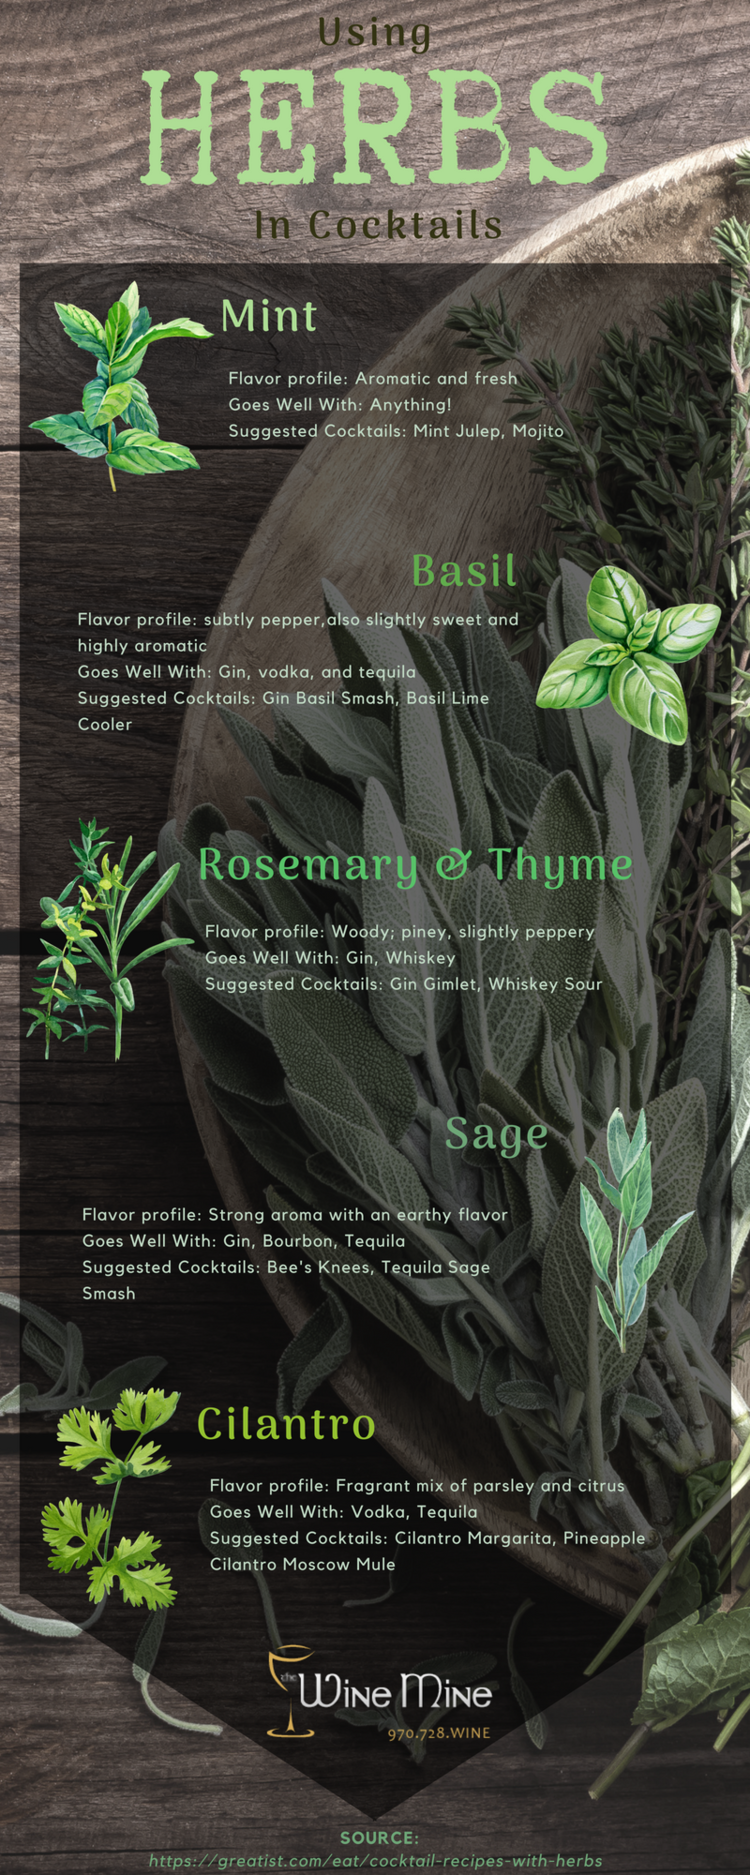 Using Herbs in Coctails